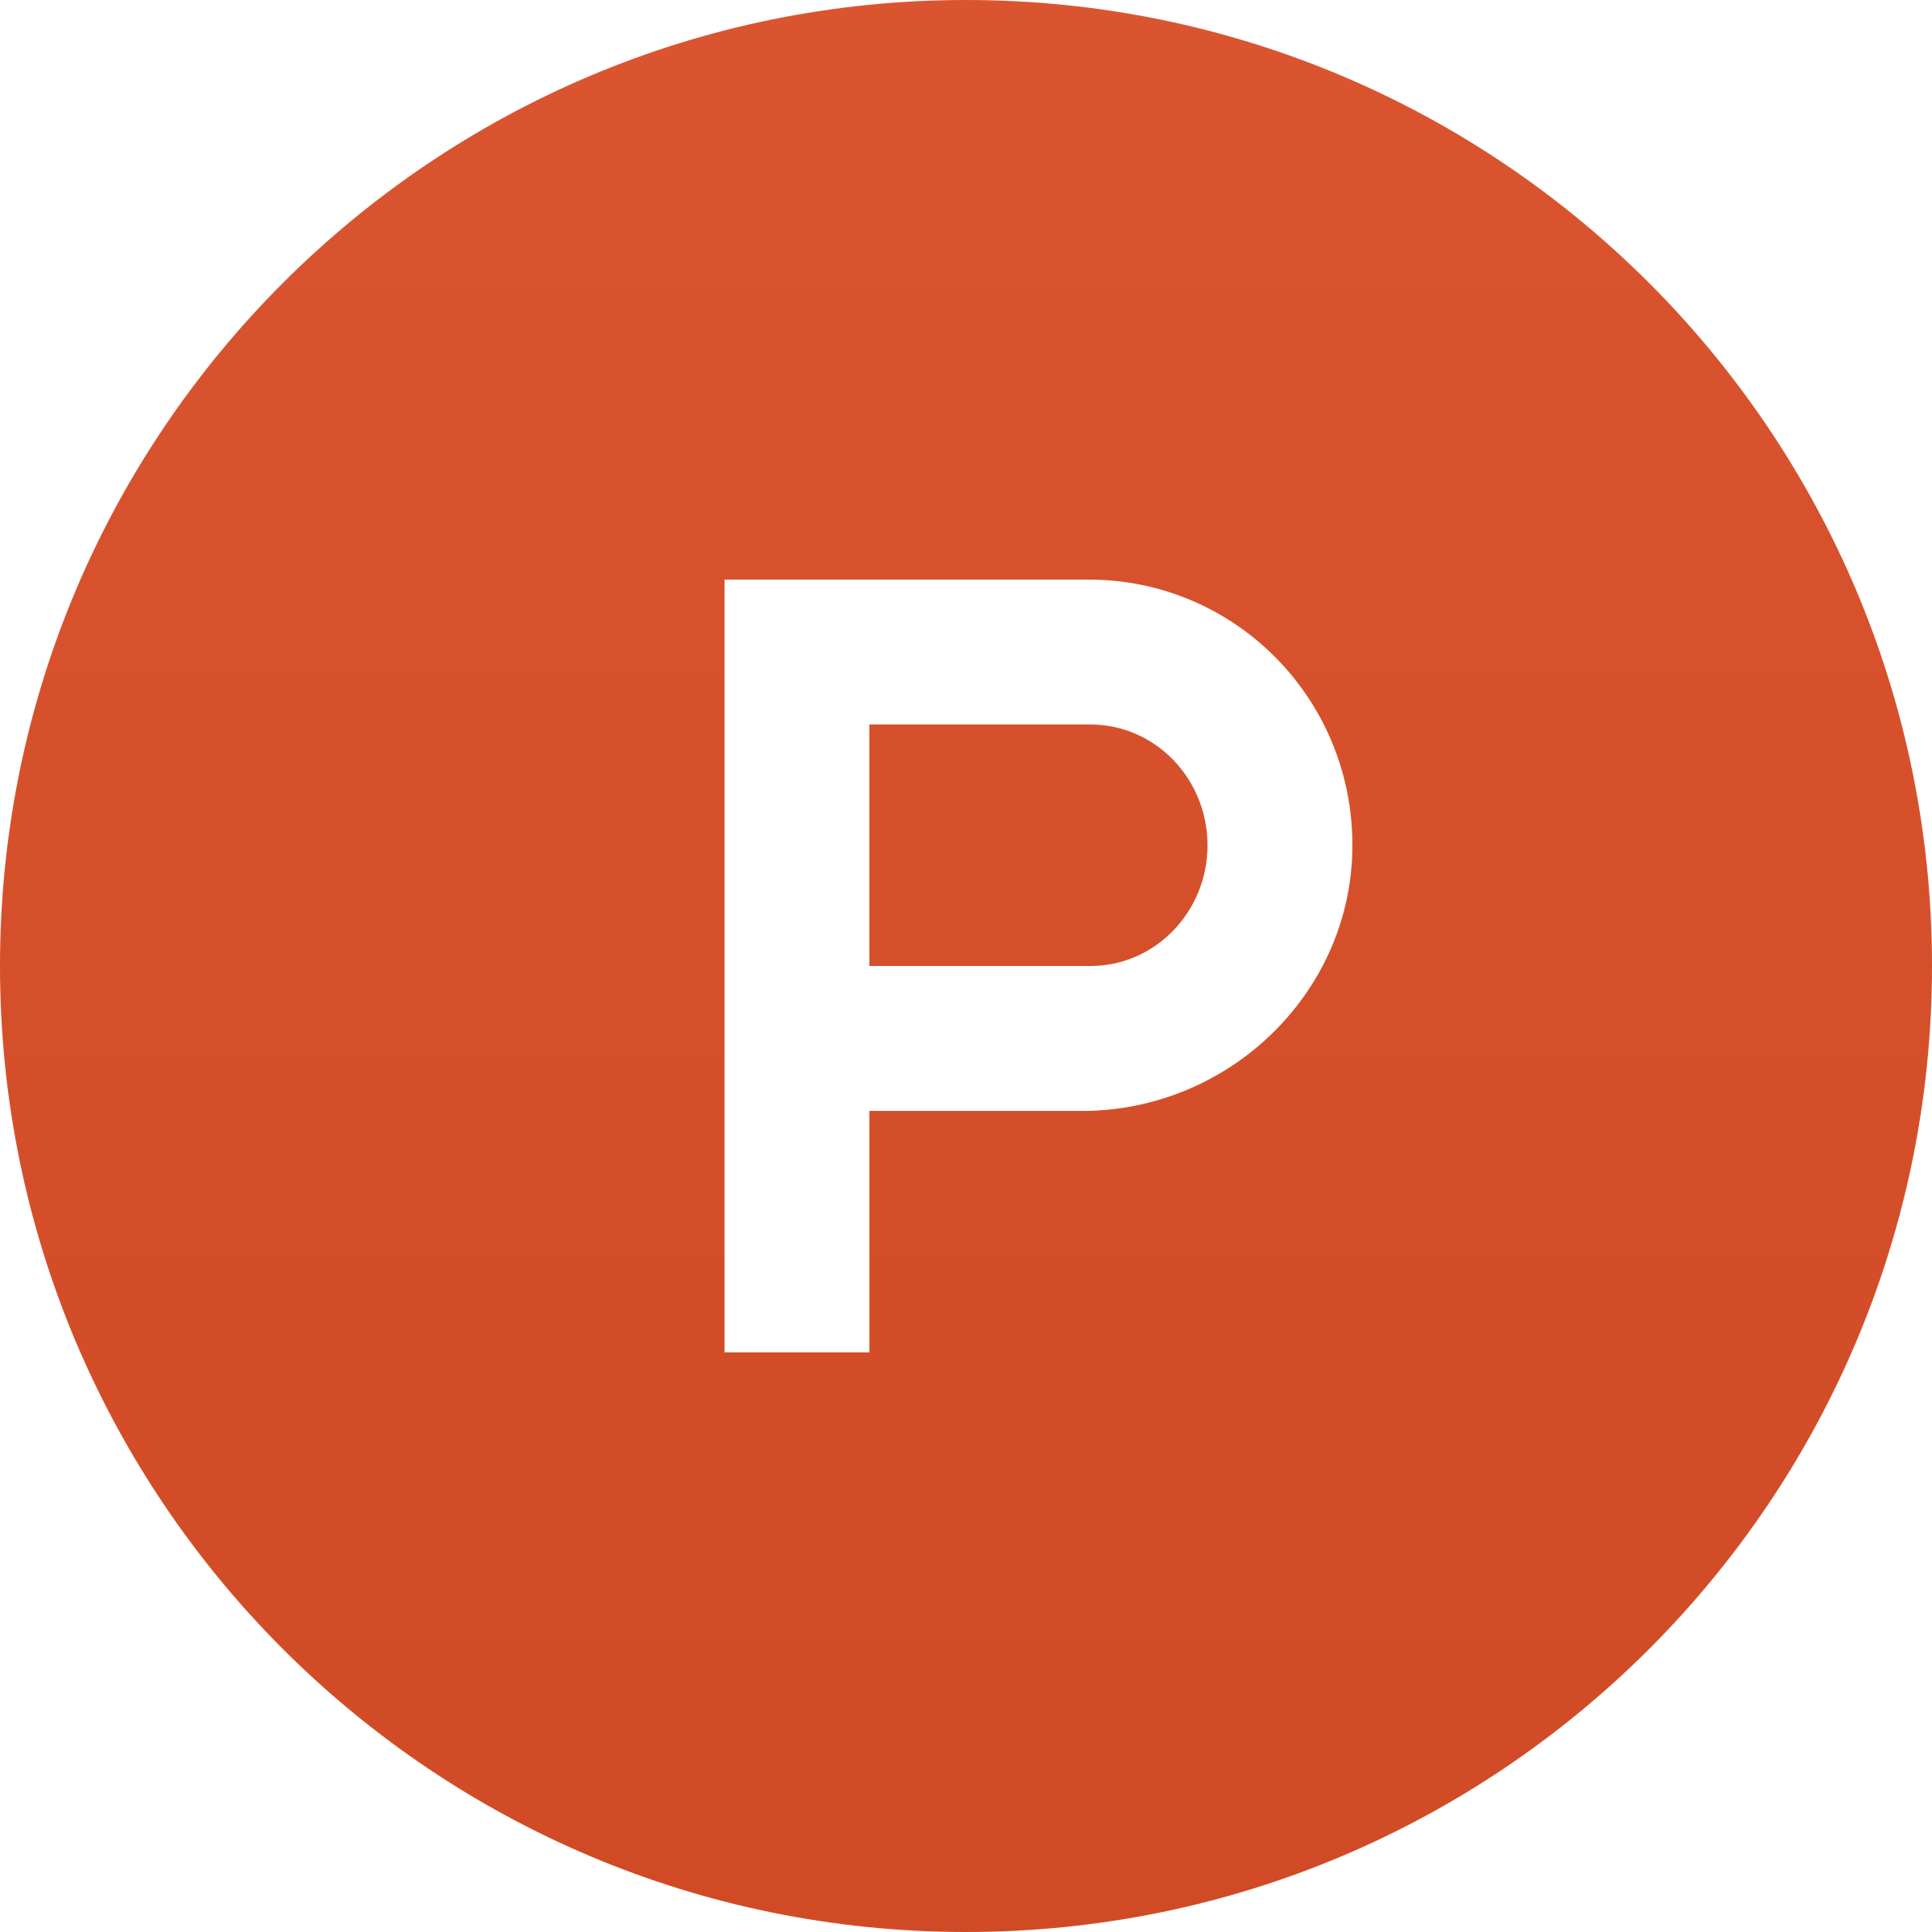 product-hunt-logo-png-transparent